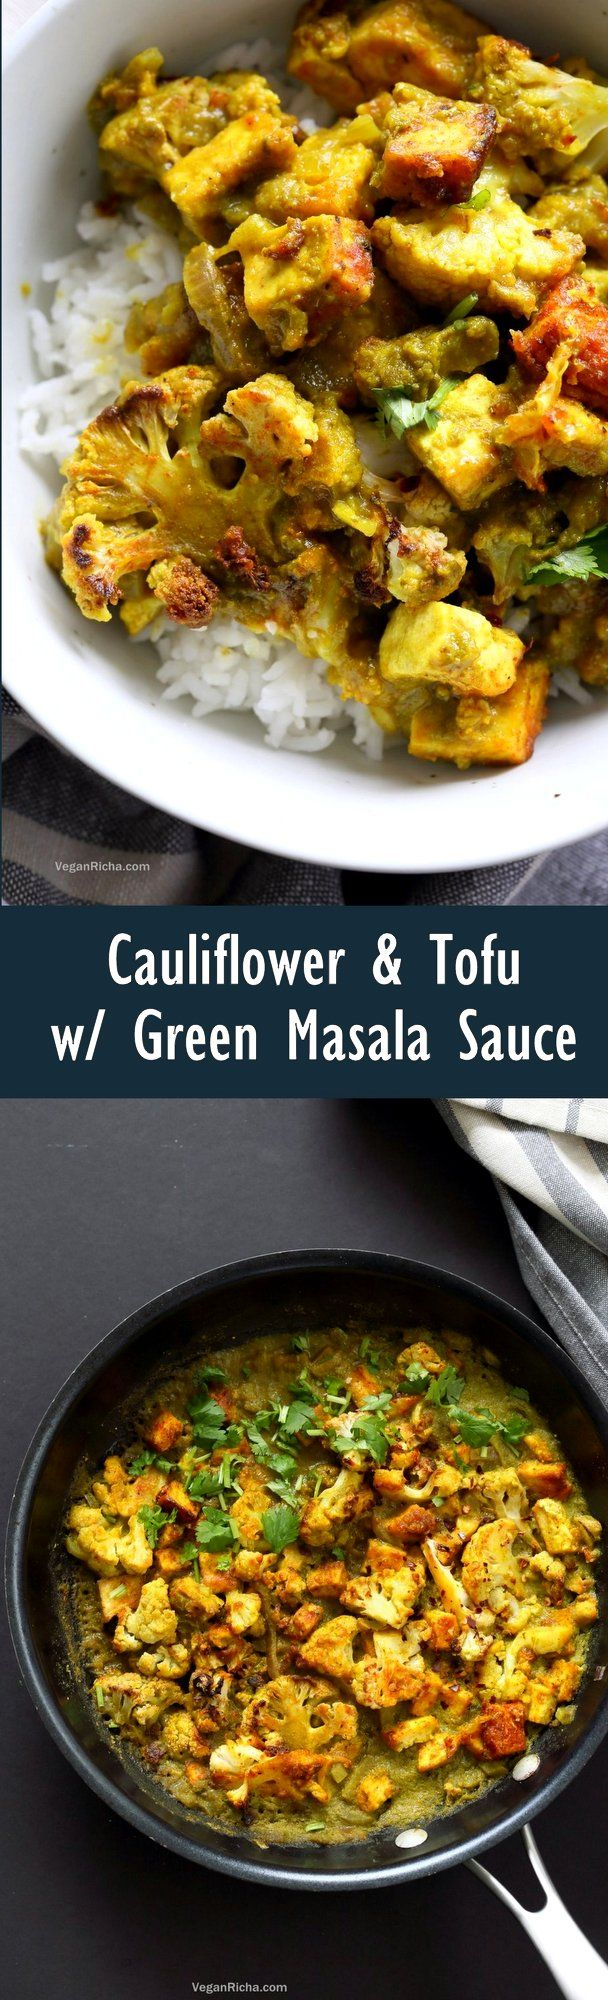 Spiced Cauliflower and Tofu in Green Masala Sauce. Baked Cauliflower and Tofu in green cilantro sauce. The sauce paste can be made ahead and stored. Vegan Gluten-free Nut-free Recipe. Can be soy-free with chickpea tofu or chickpeas or beans or other veggies.   VeganRicha.com